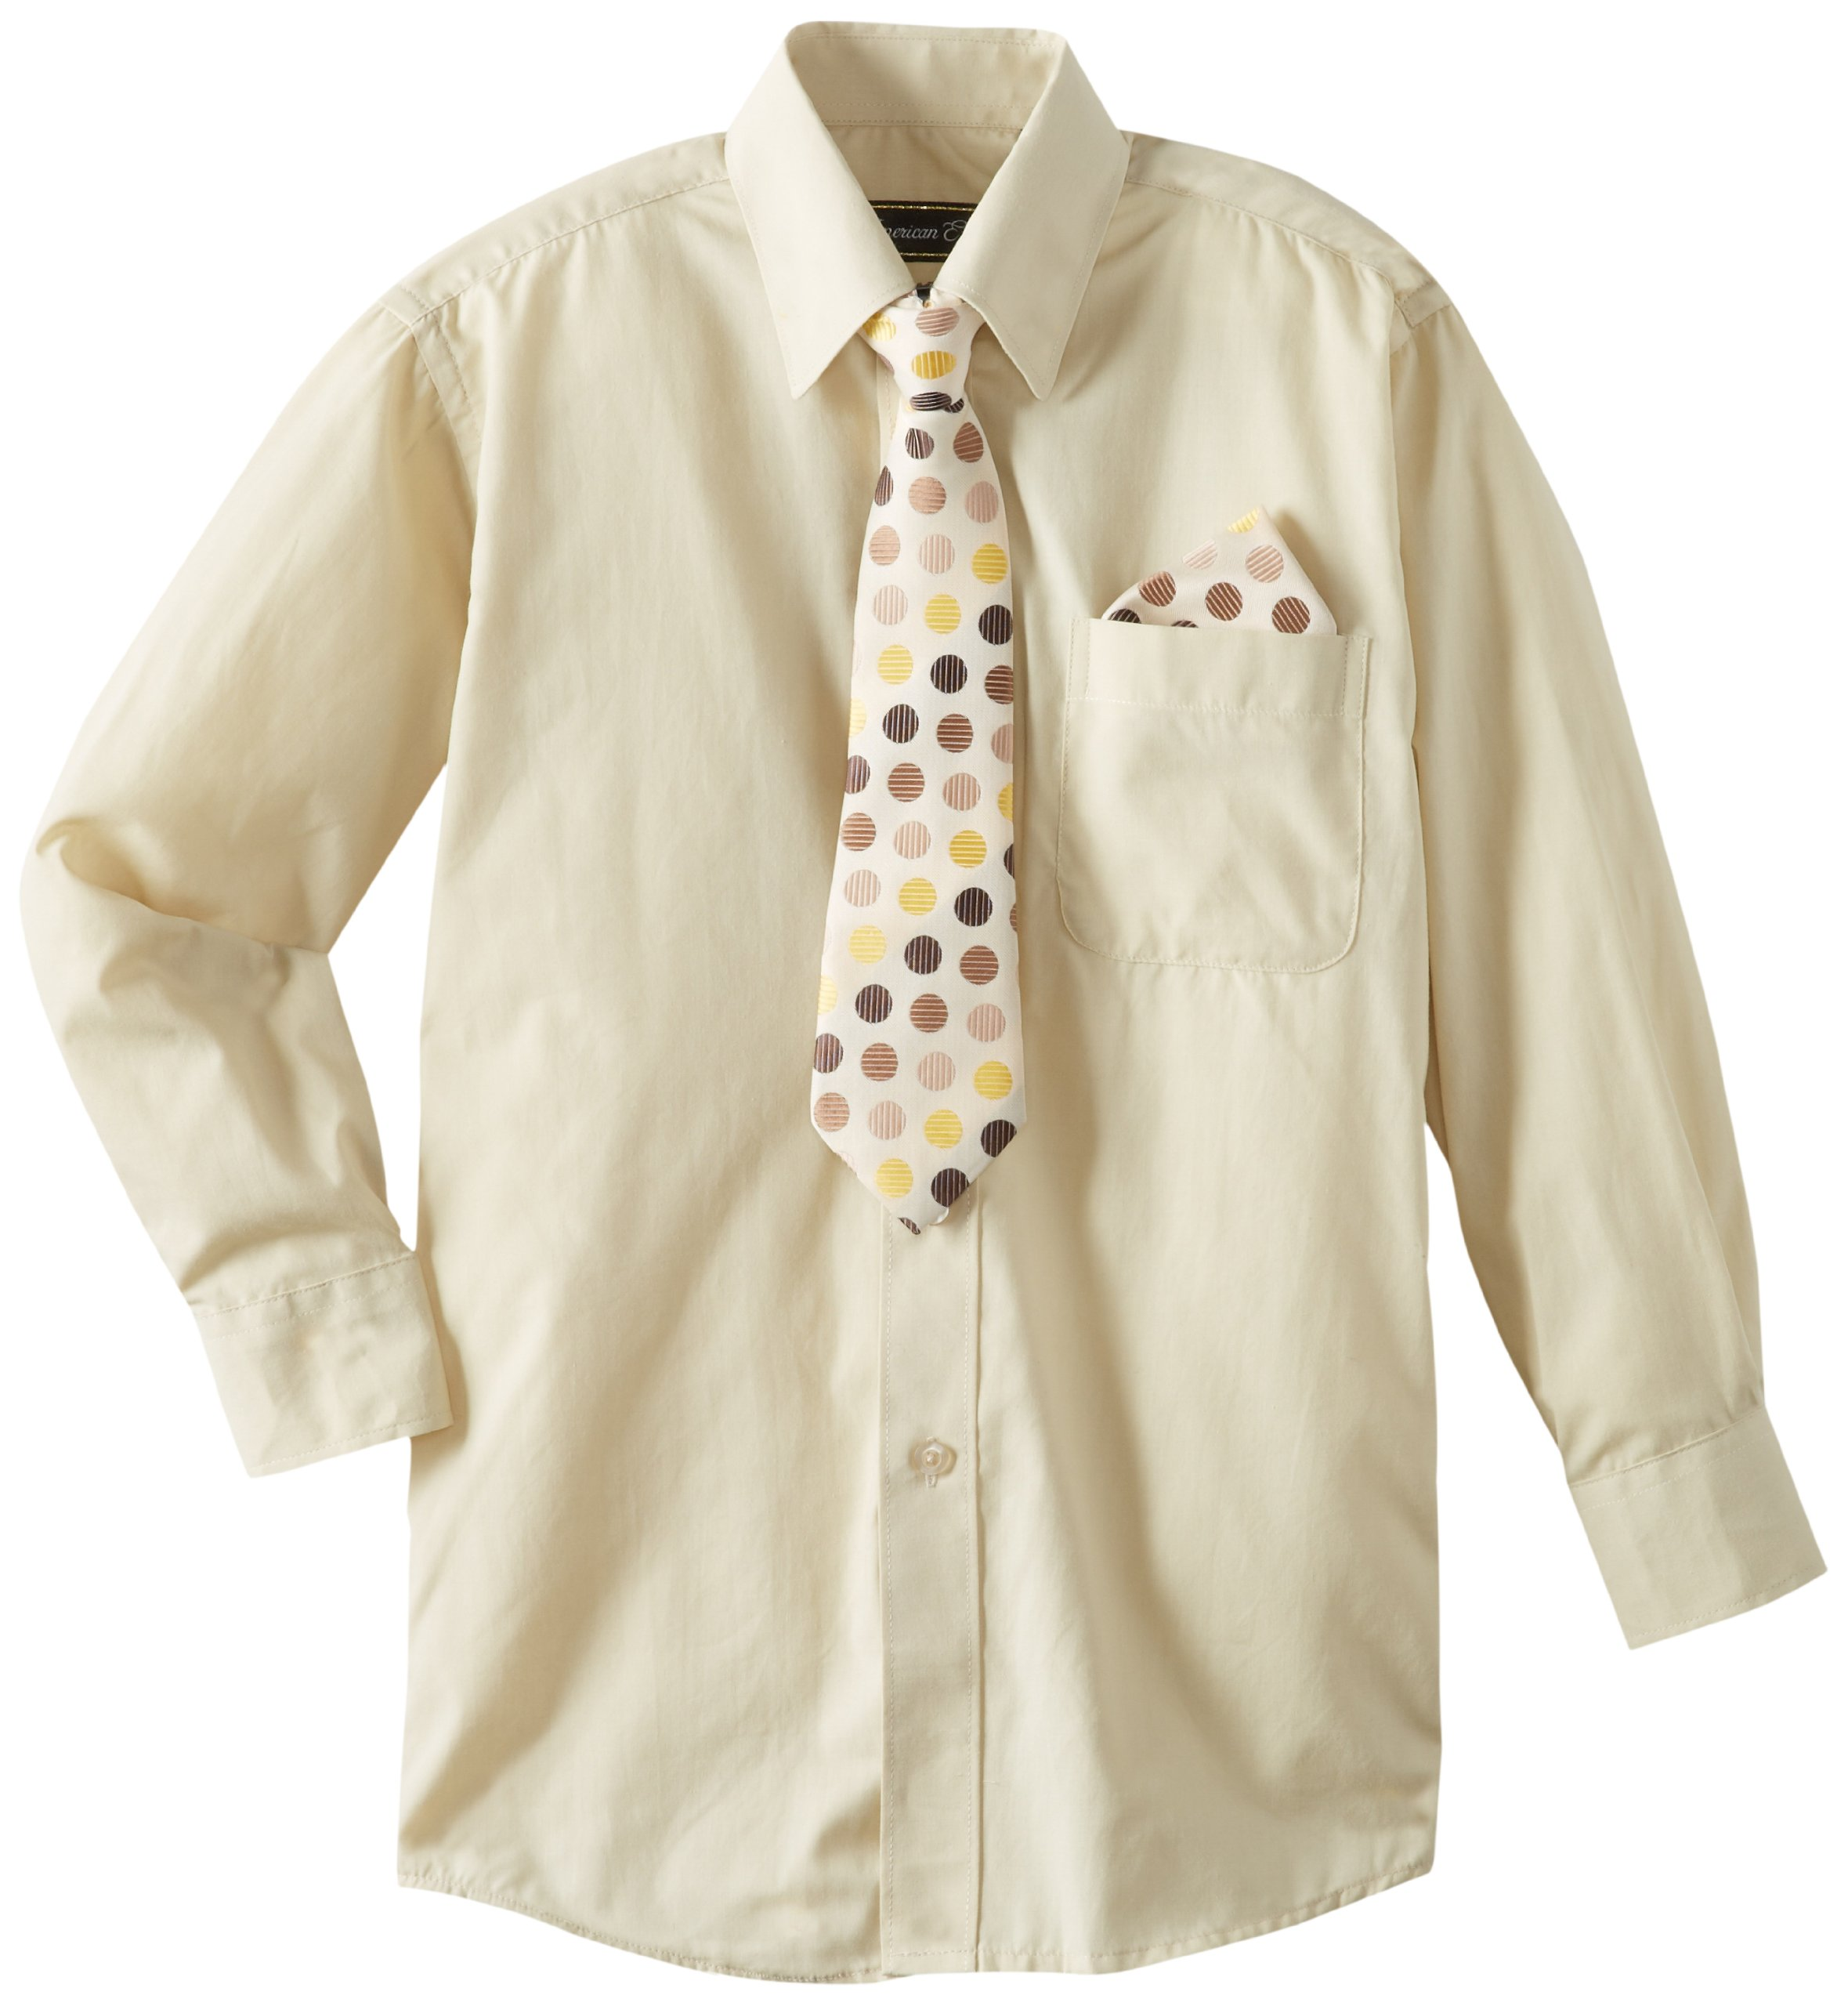 American Exchange Big Boys' Dress Shirt with Tie and Pocket Square, Beige, 14